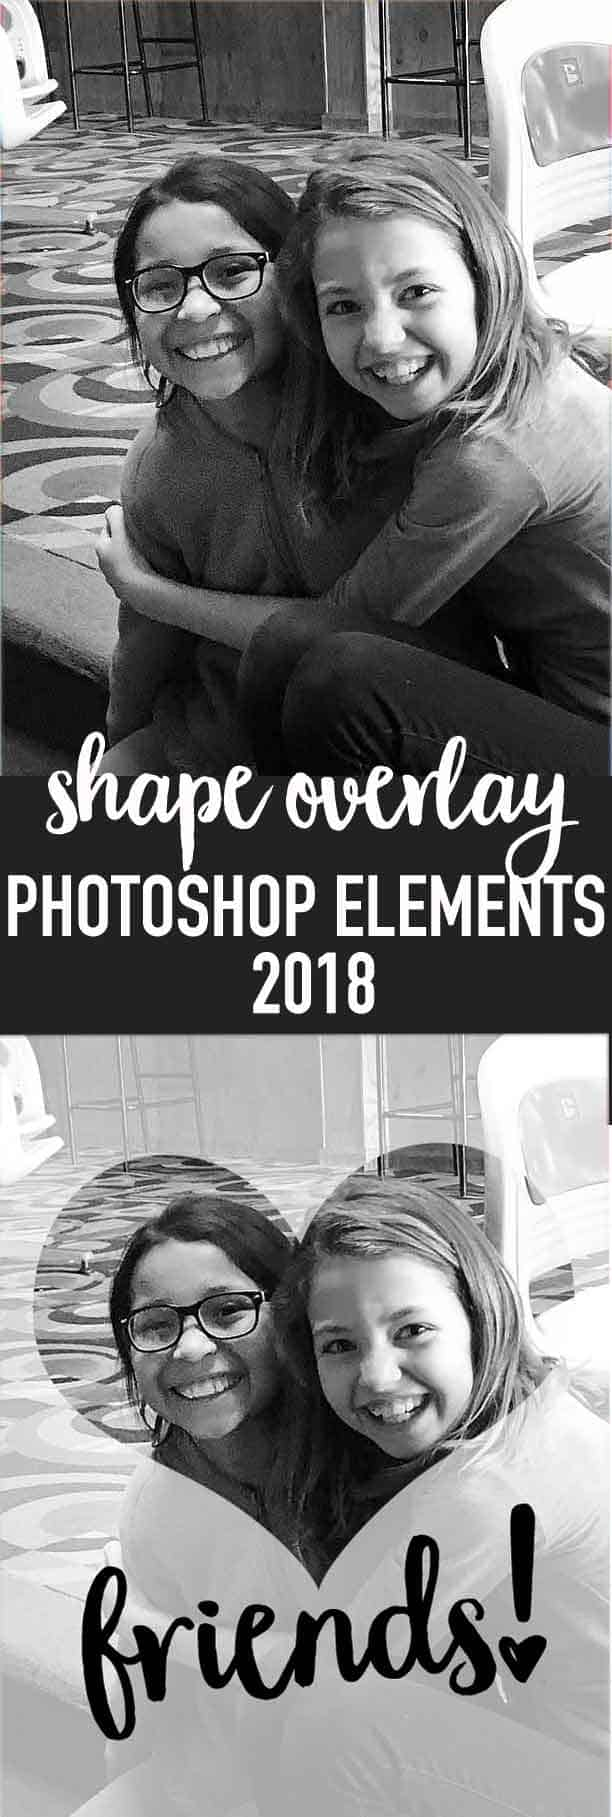 shape overlay photoshop elements 2018